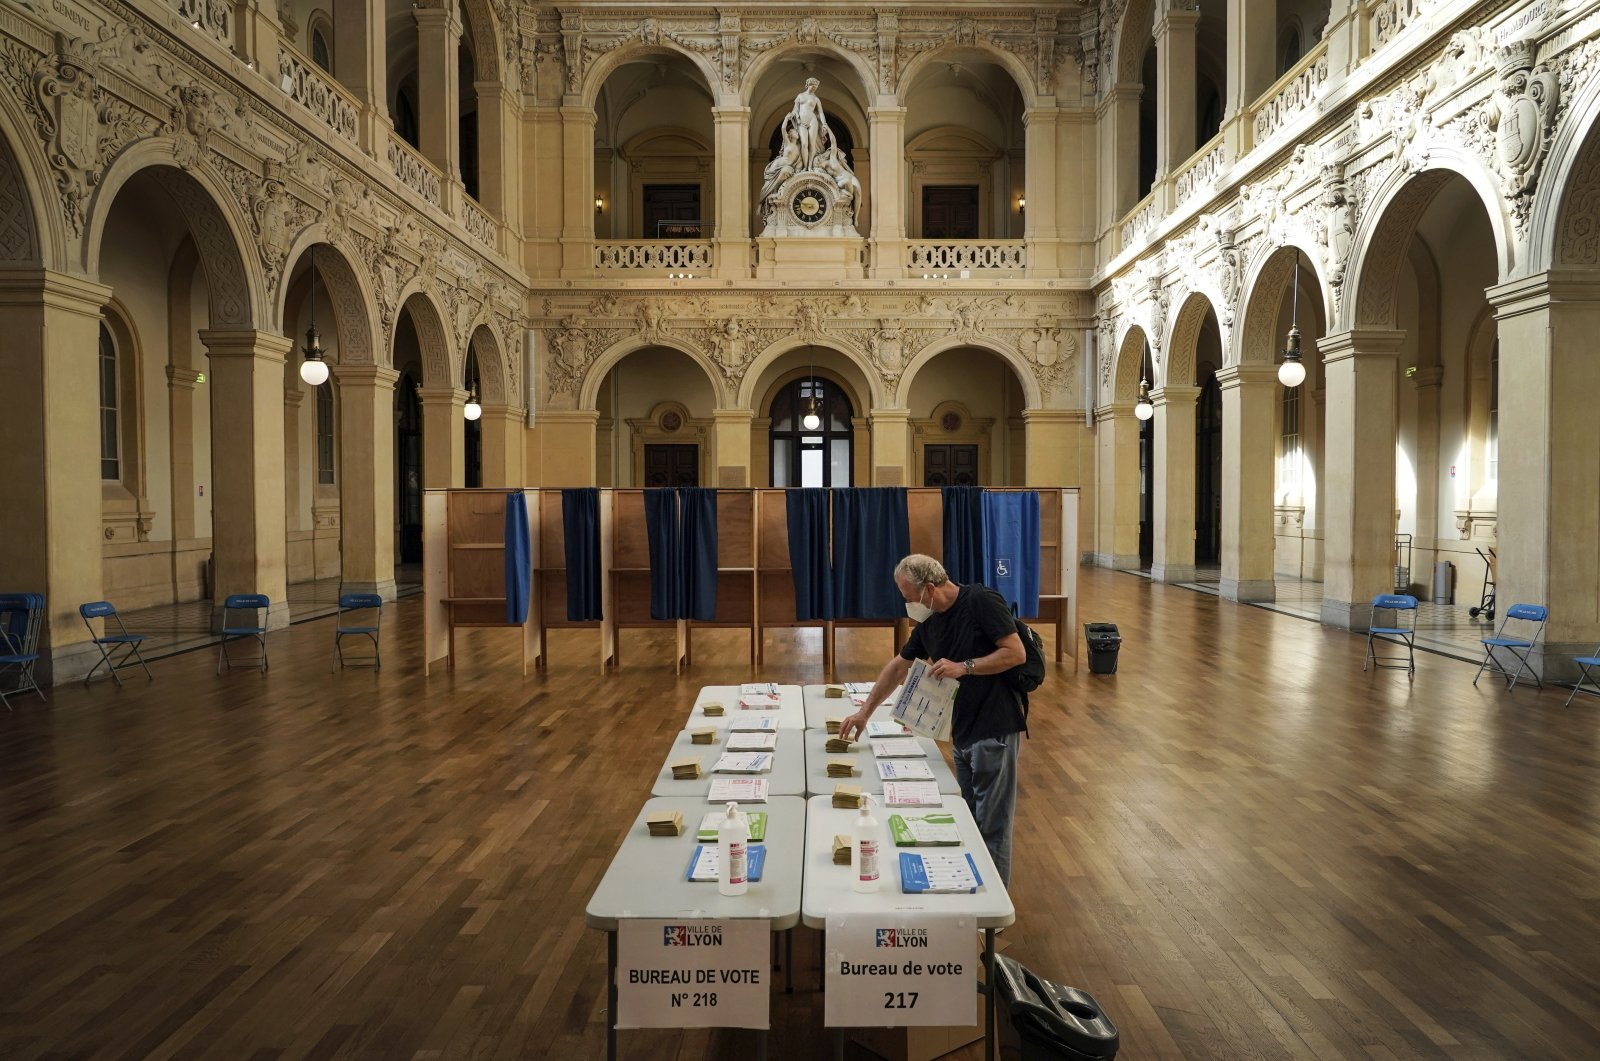 A voter picks up ballots before voting for the regional elections in Lyon, central France, June 20, 2021. (AP Photo)